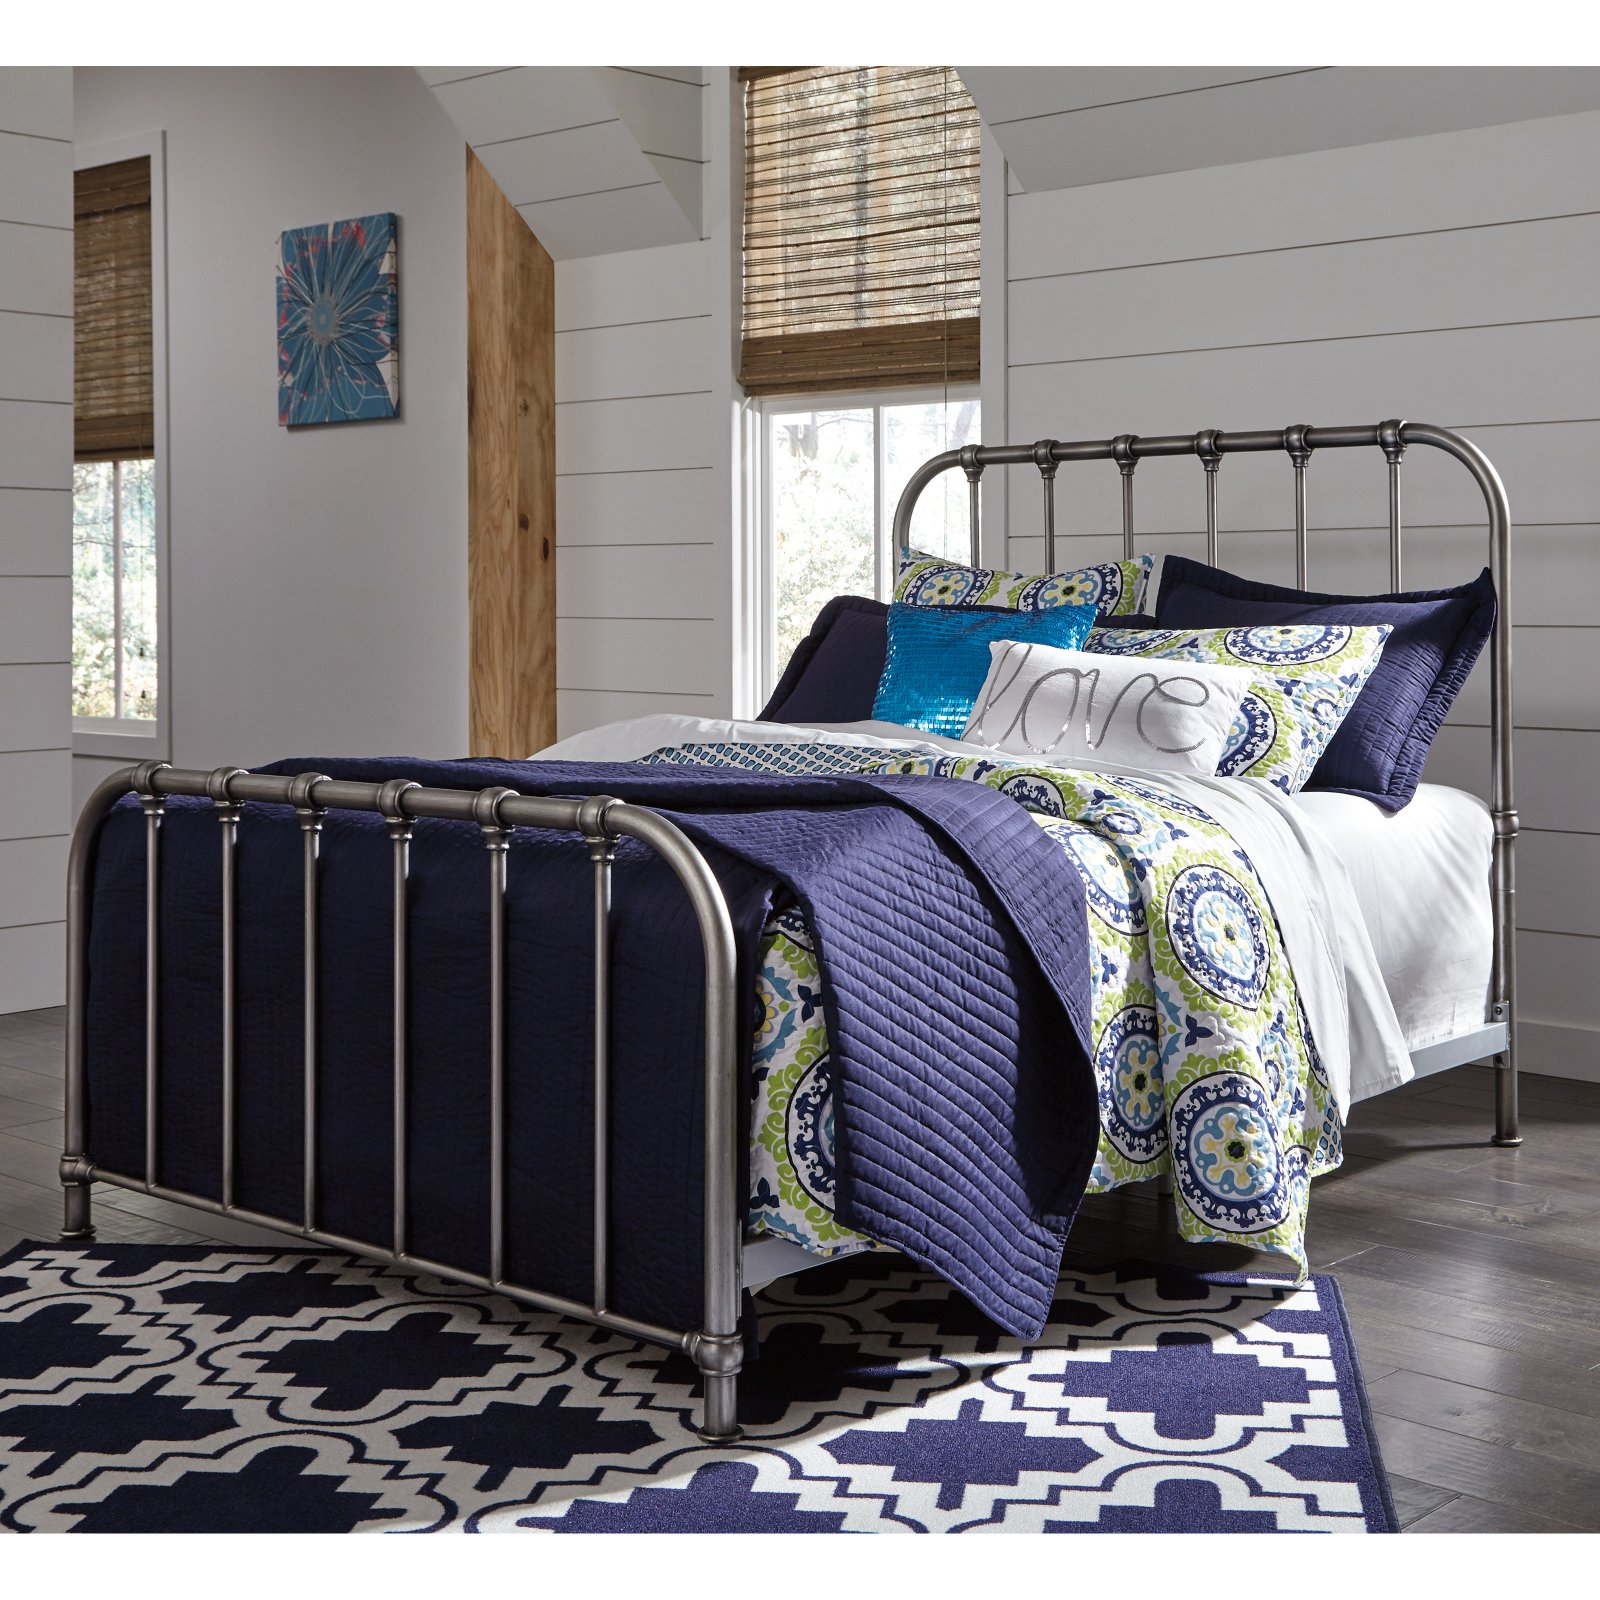 Ashley Furniture Nashburg Queen Metal Spindle Bed in